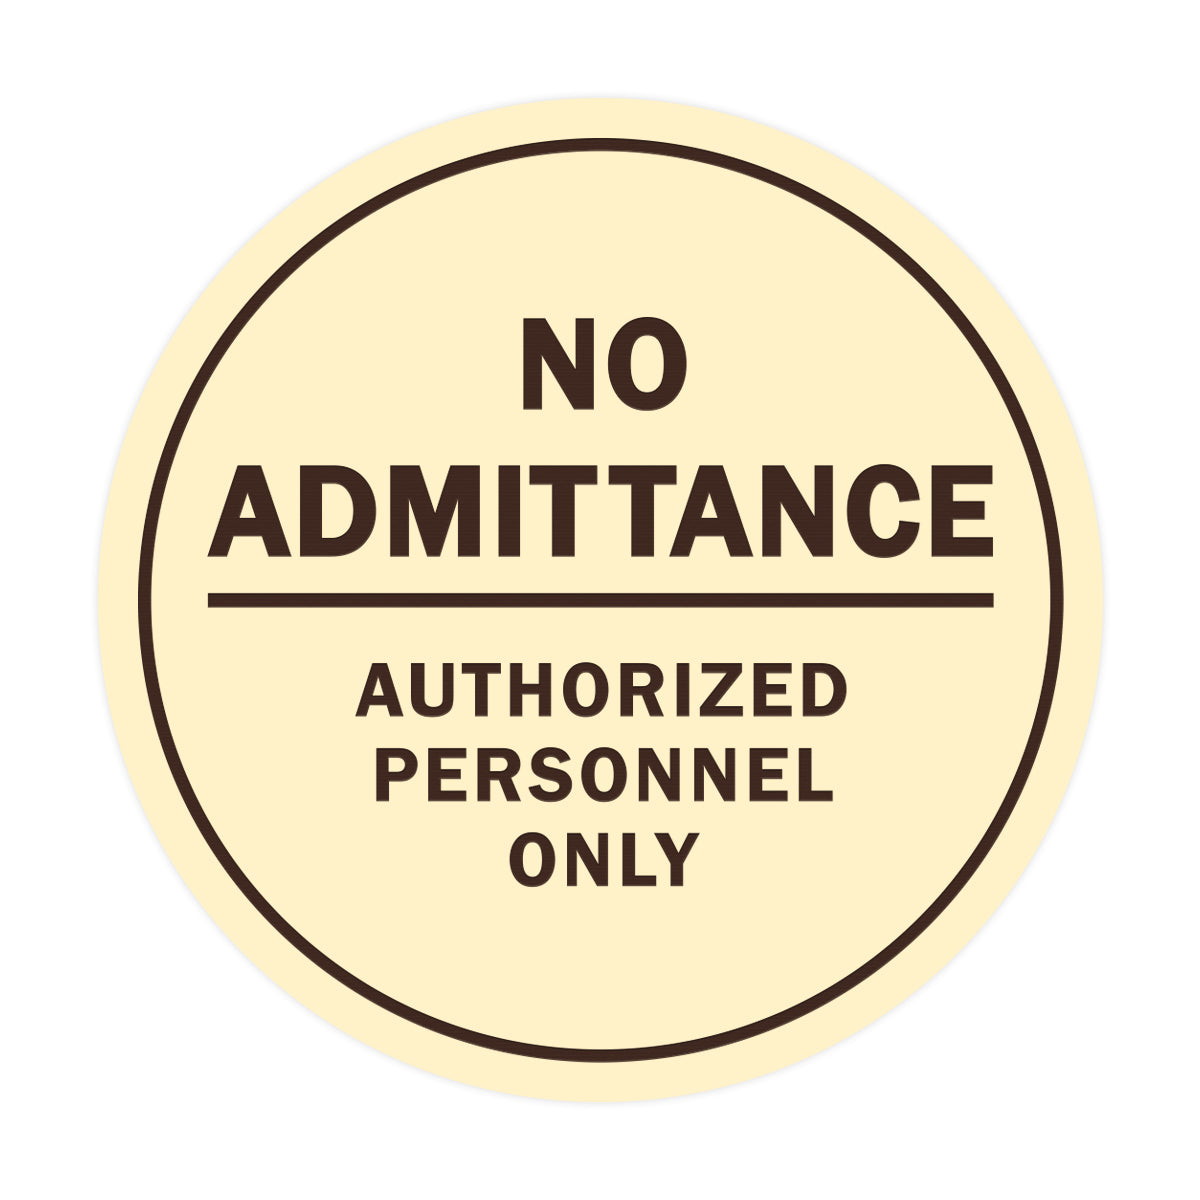 Signs ByLITA Circle No Admittance Sign with Adhesive Tape, Mounts On Any Surface, Weather Resistant, Indoor/Outdoor Use